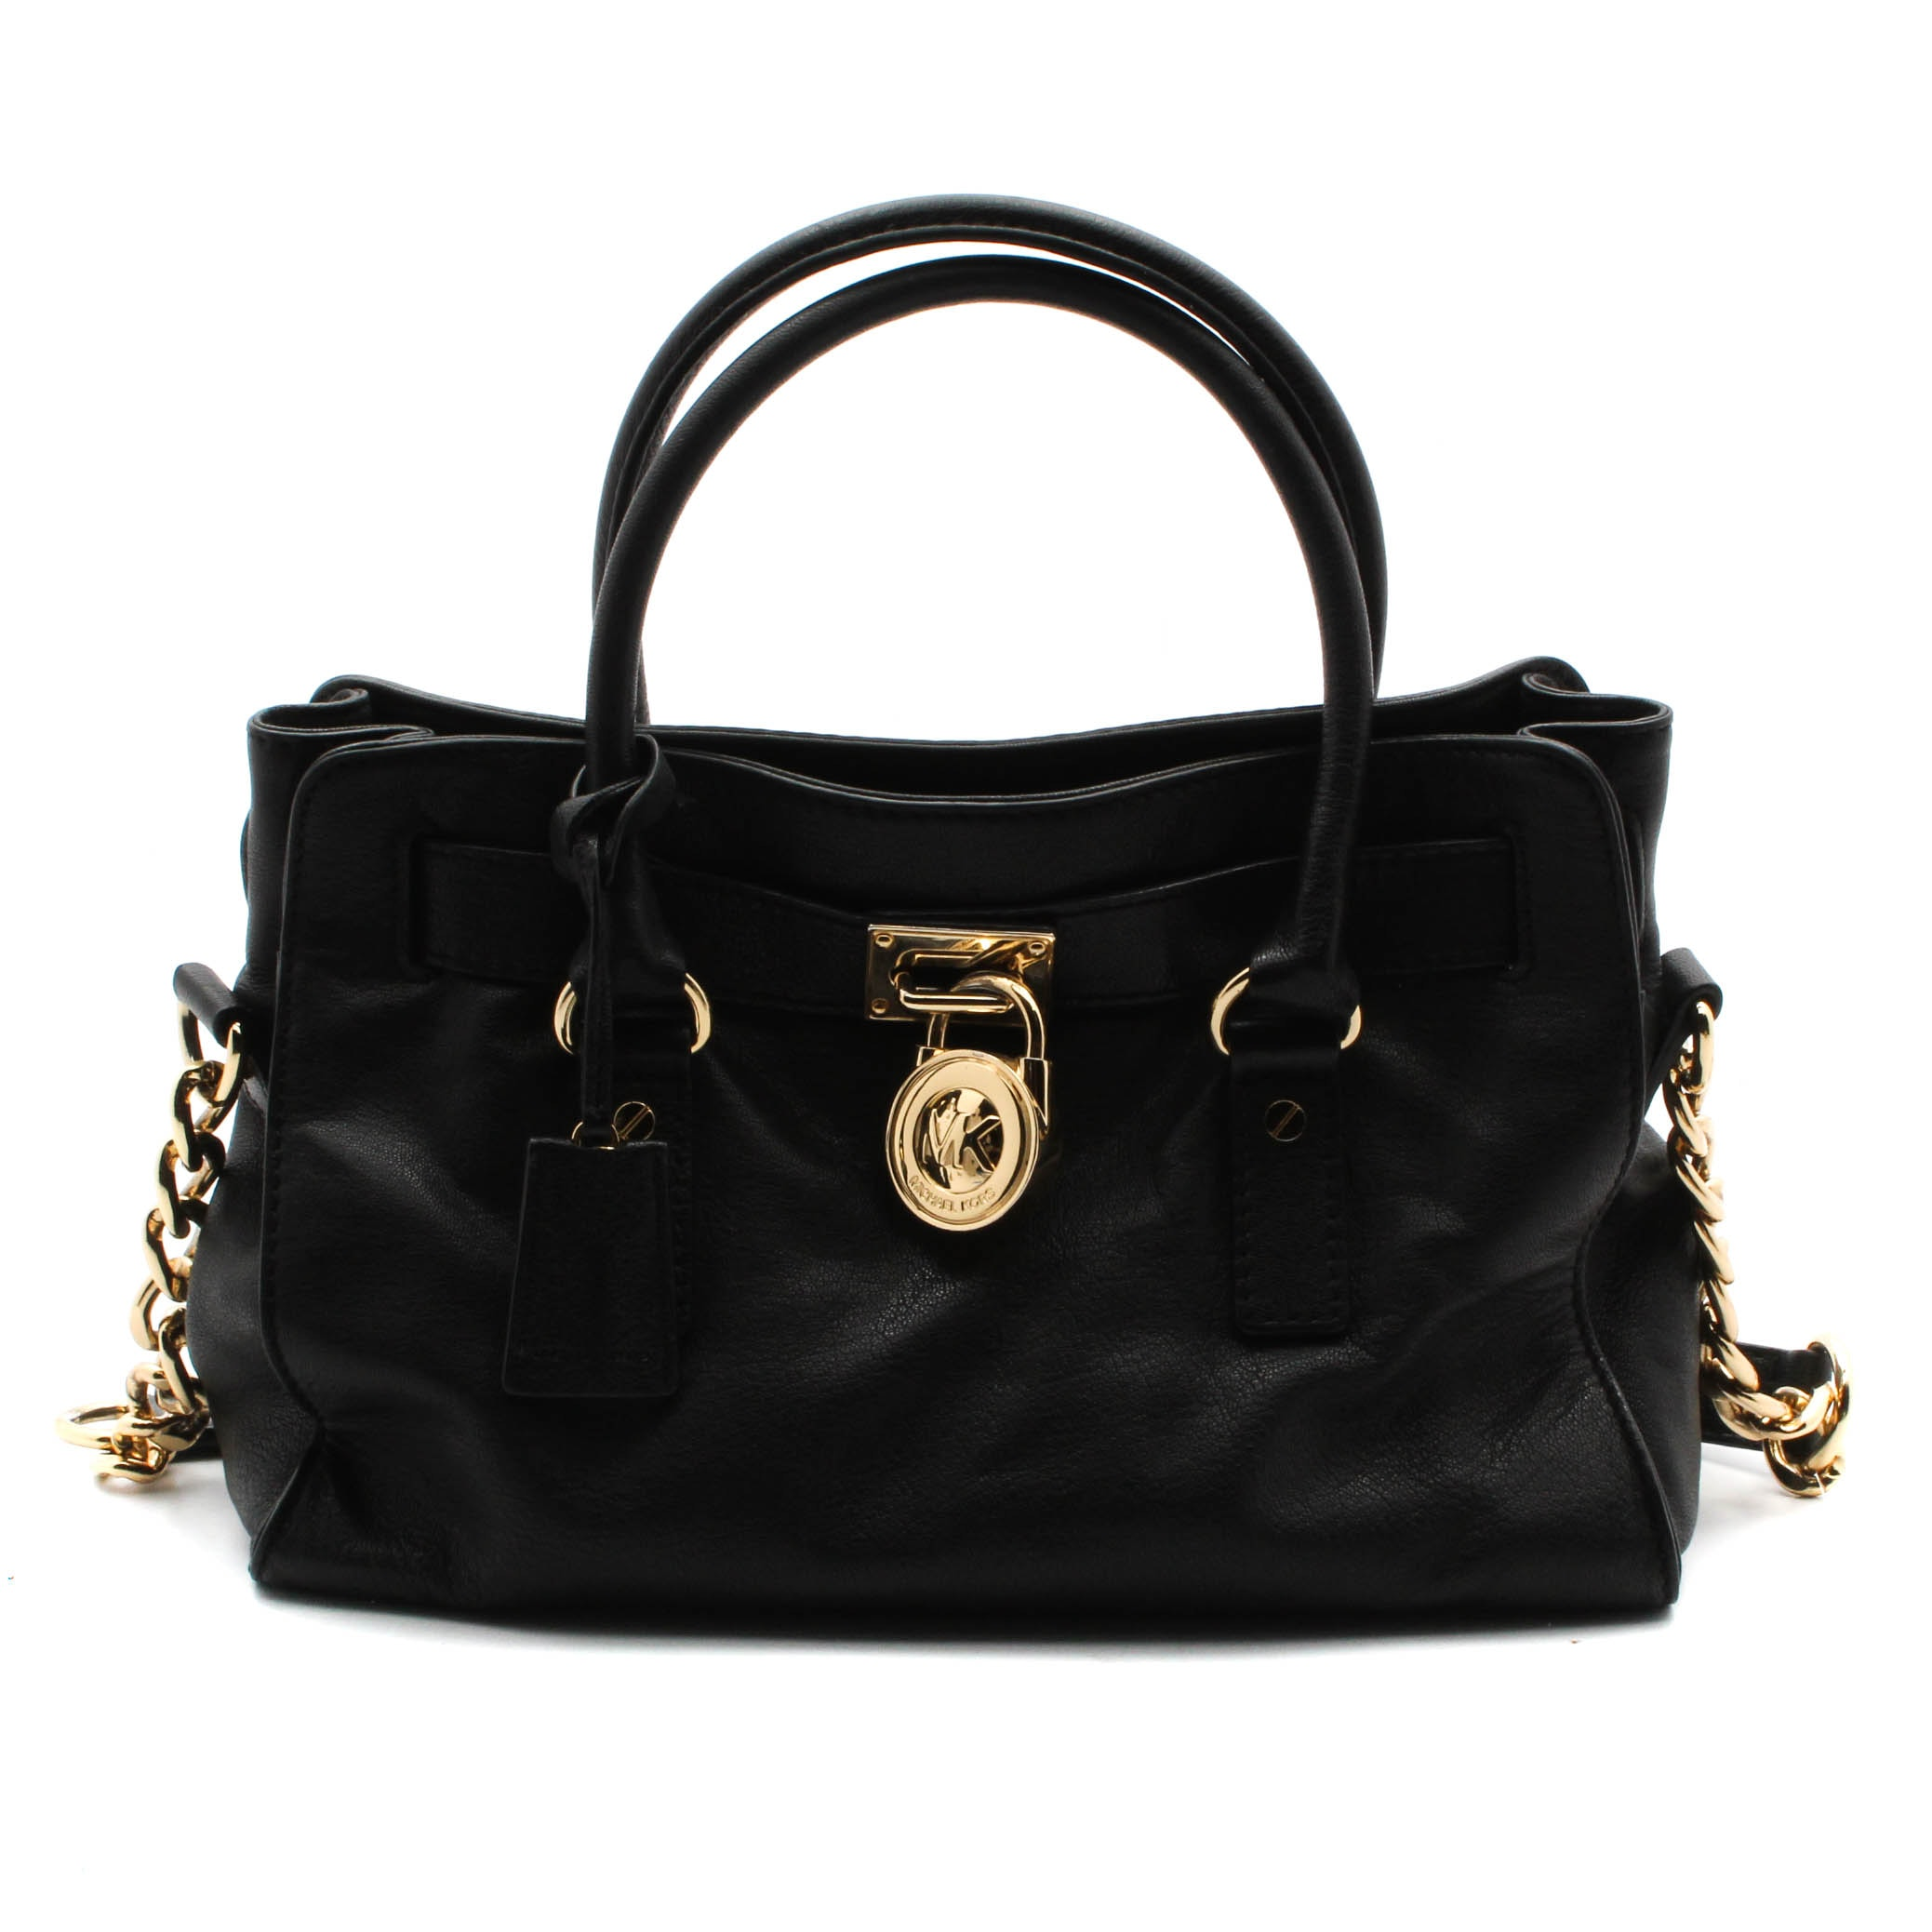 MICHAEL by Michael Kors Black Leather Handbag